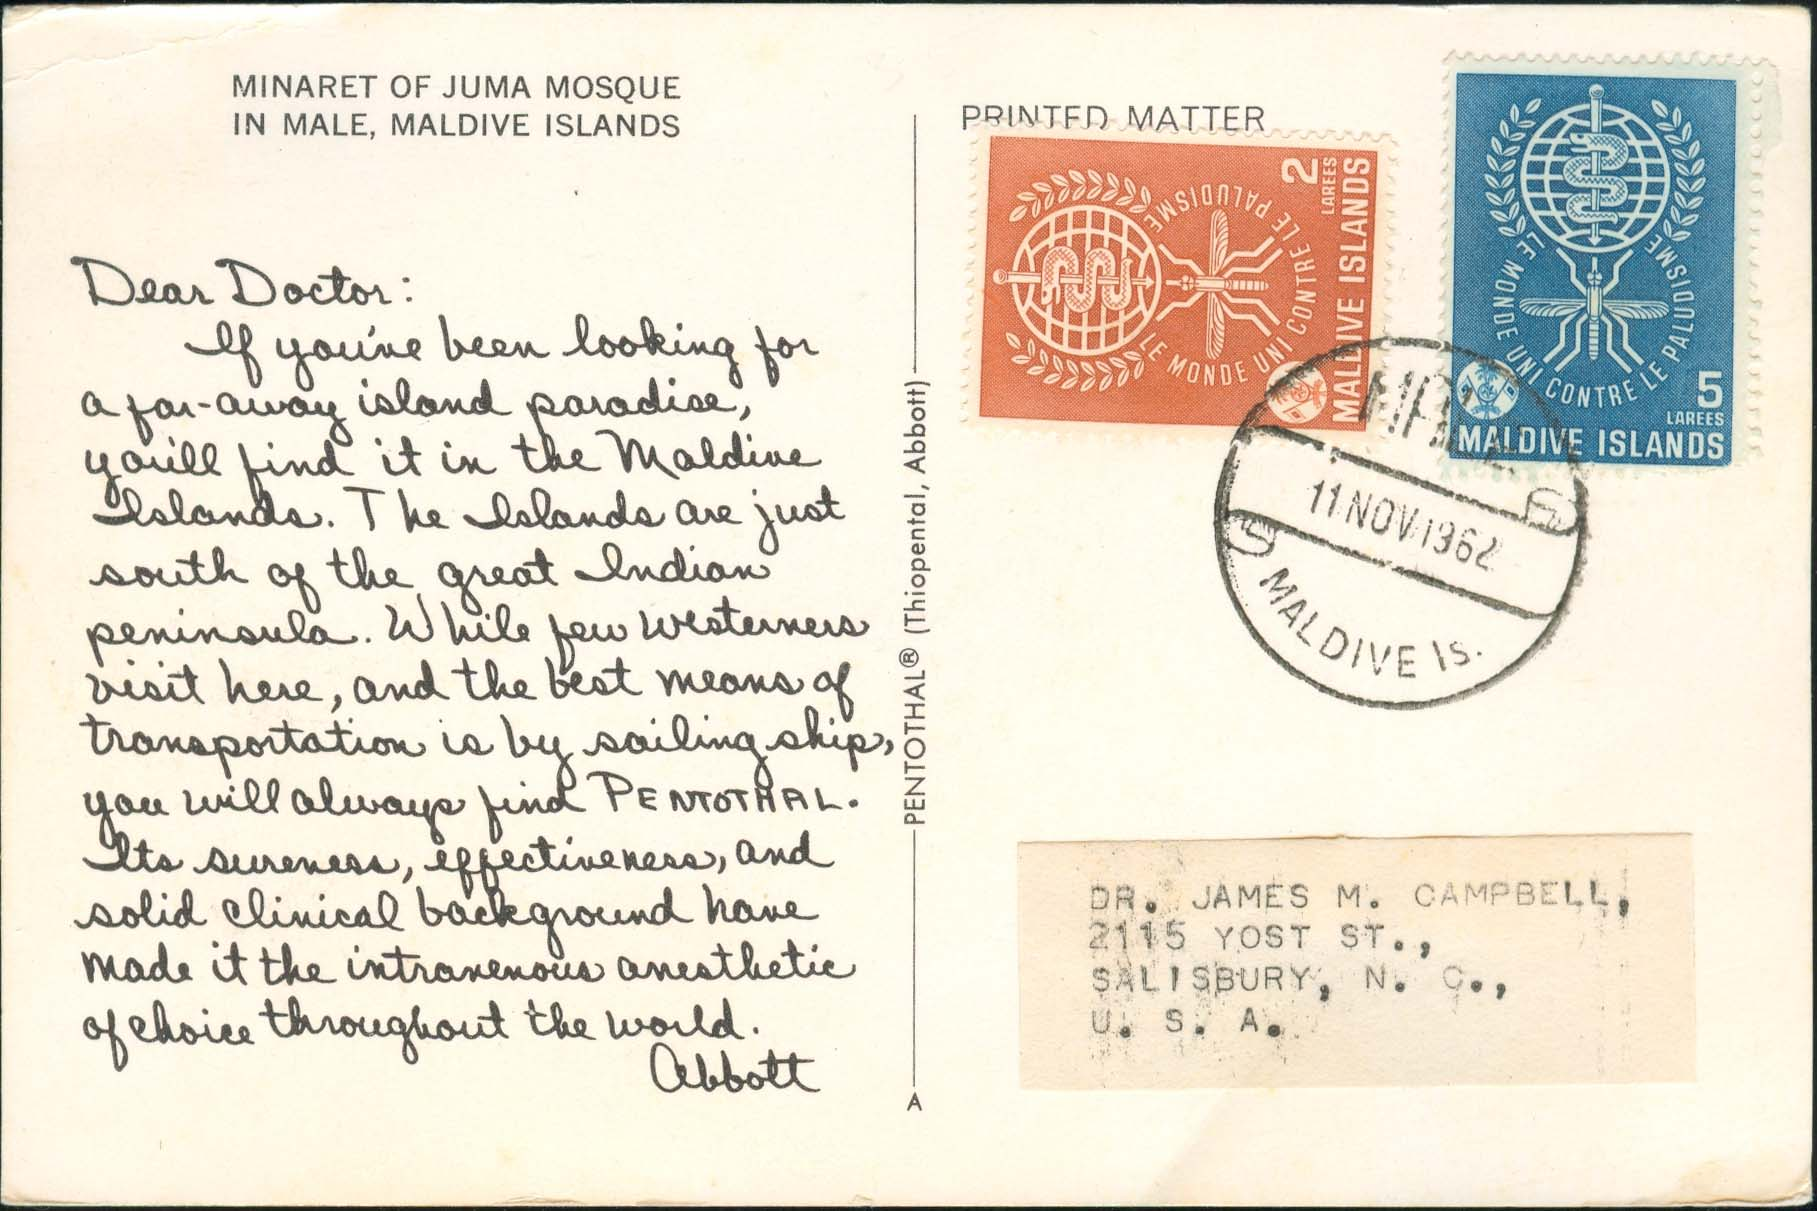 Dear Doctor Postcard - Type A - United States - 1962, Nov 11